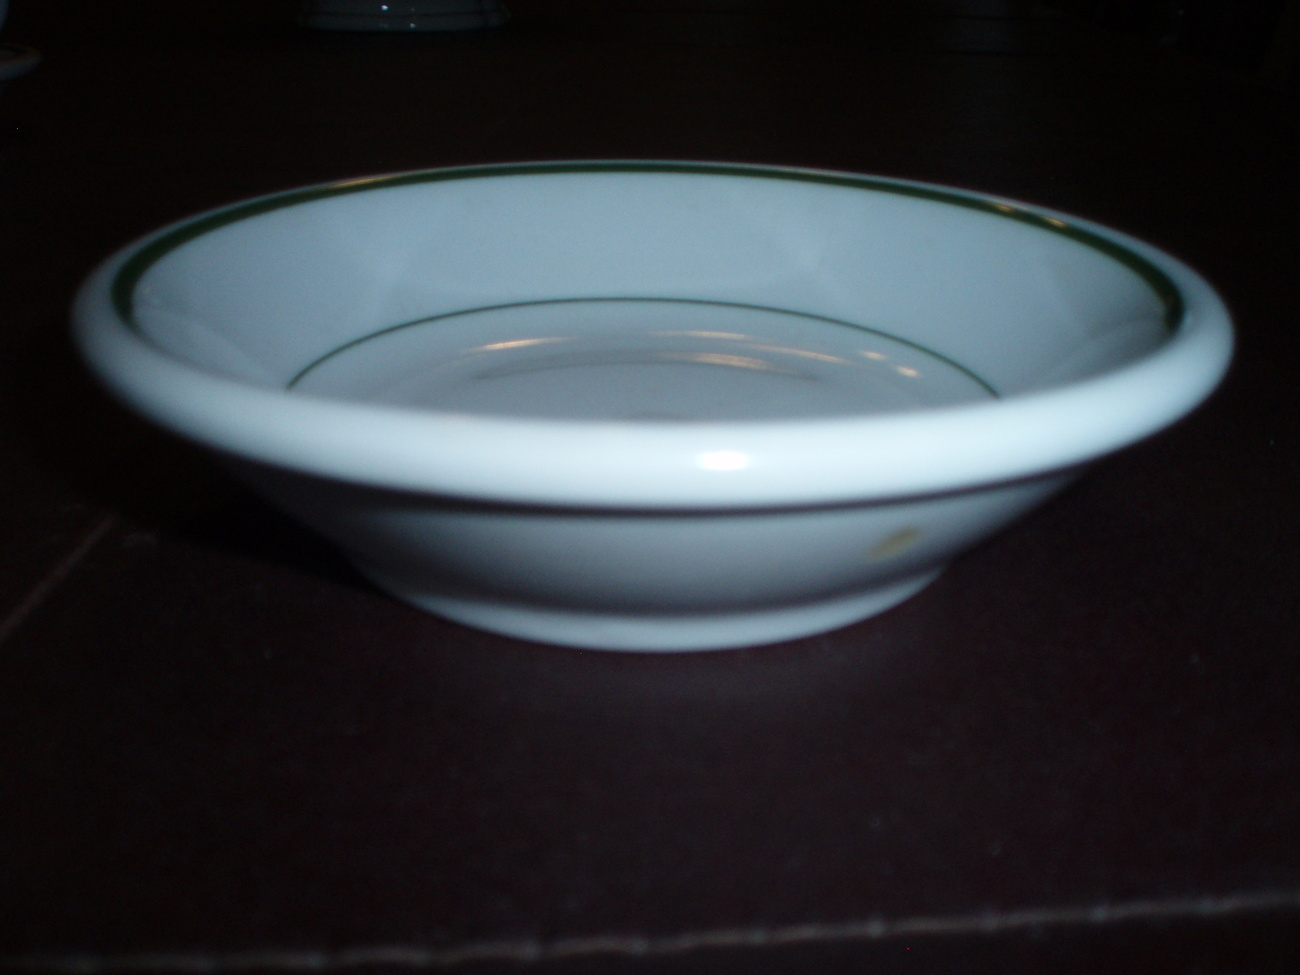 Shenango China Lawrence 5 inch bowl   restaurantware W17